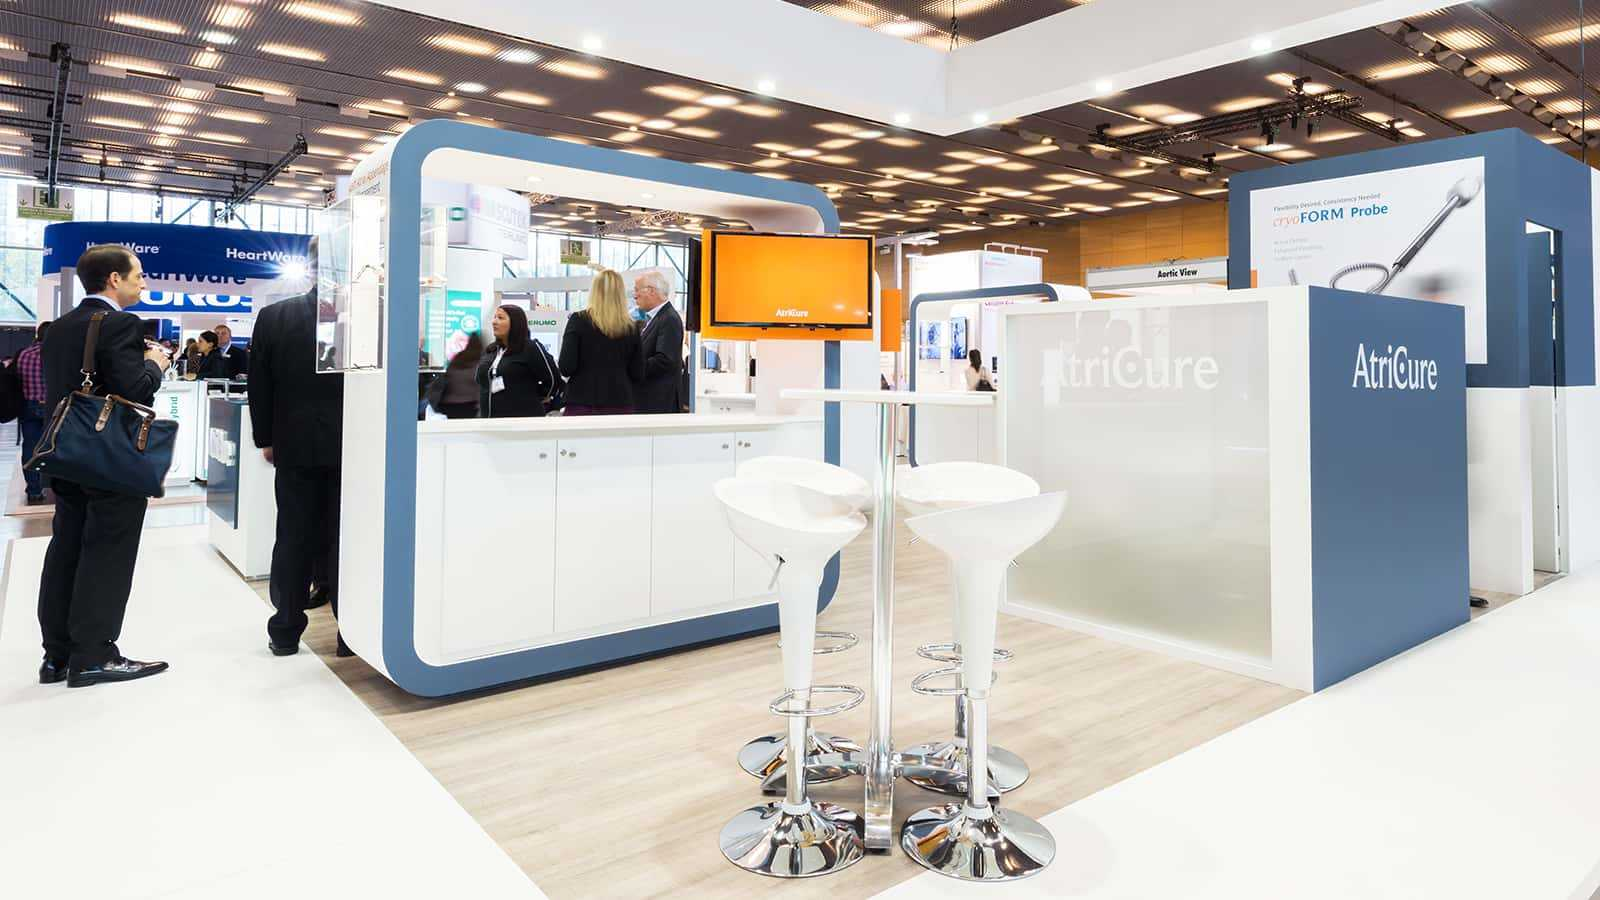 Meeting area at AtriCure EACTS 2017 trade show exhibit design experience.